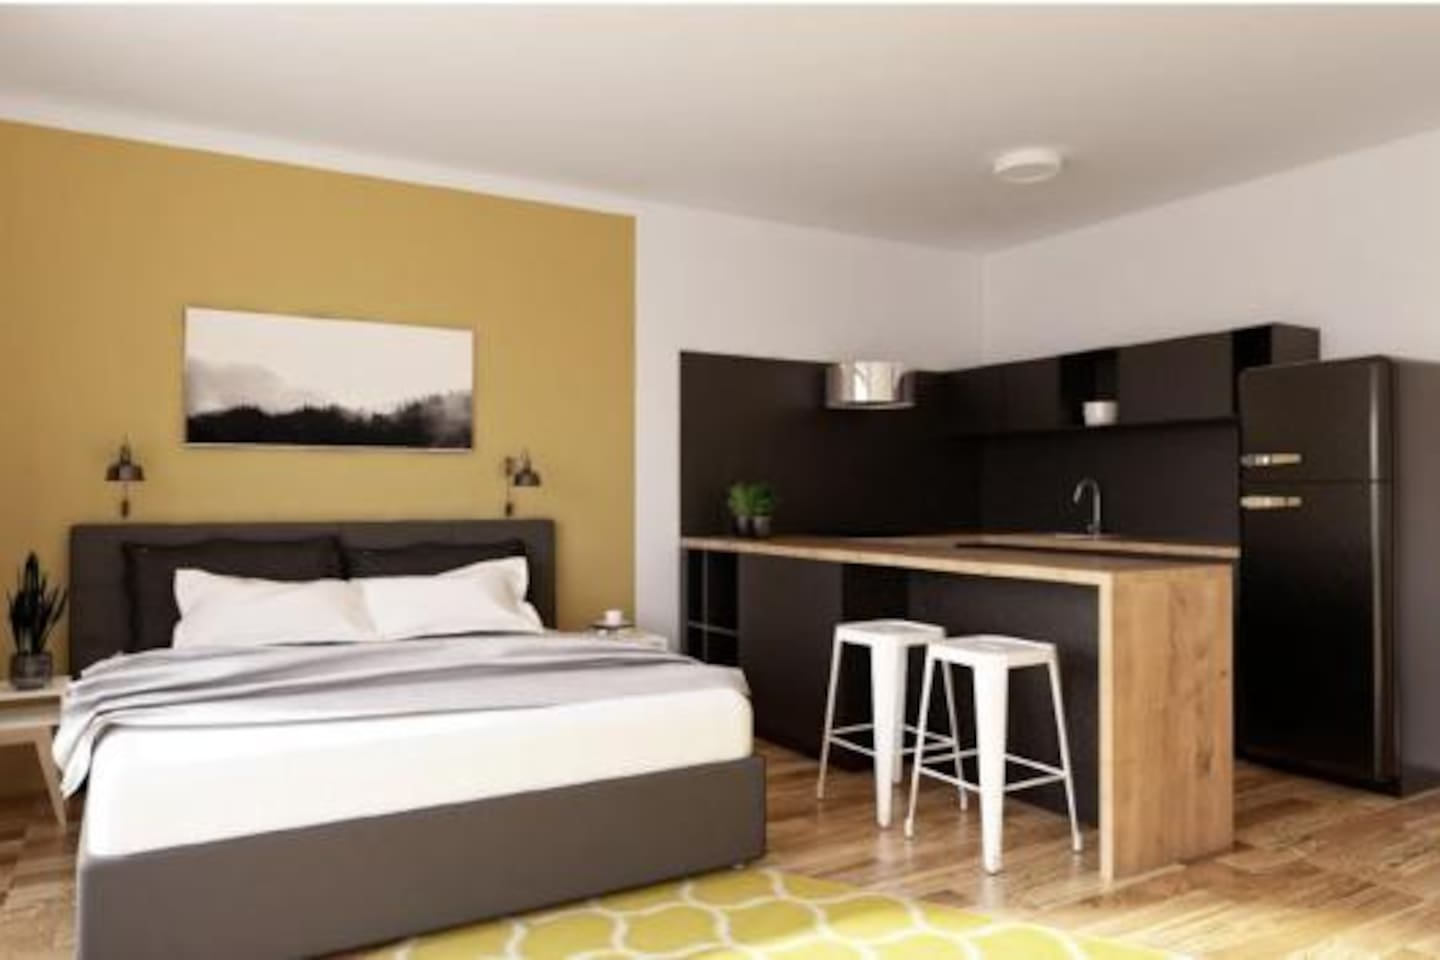 Park Rokytka - new terrace apartment with free parking in Prague